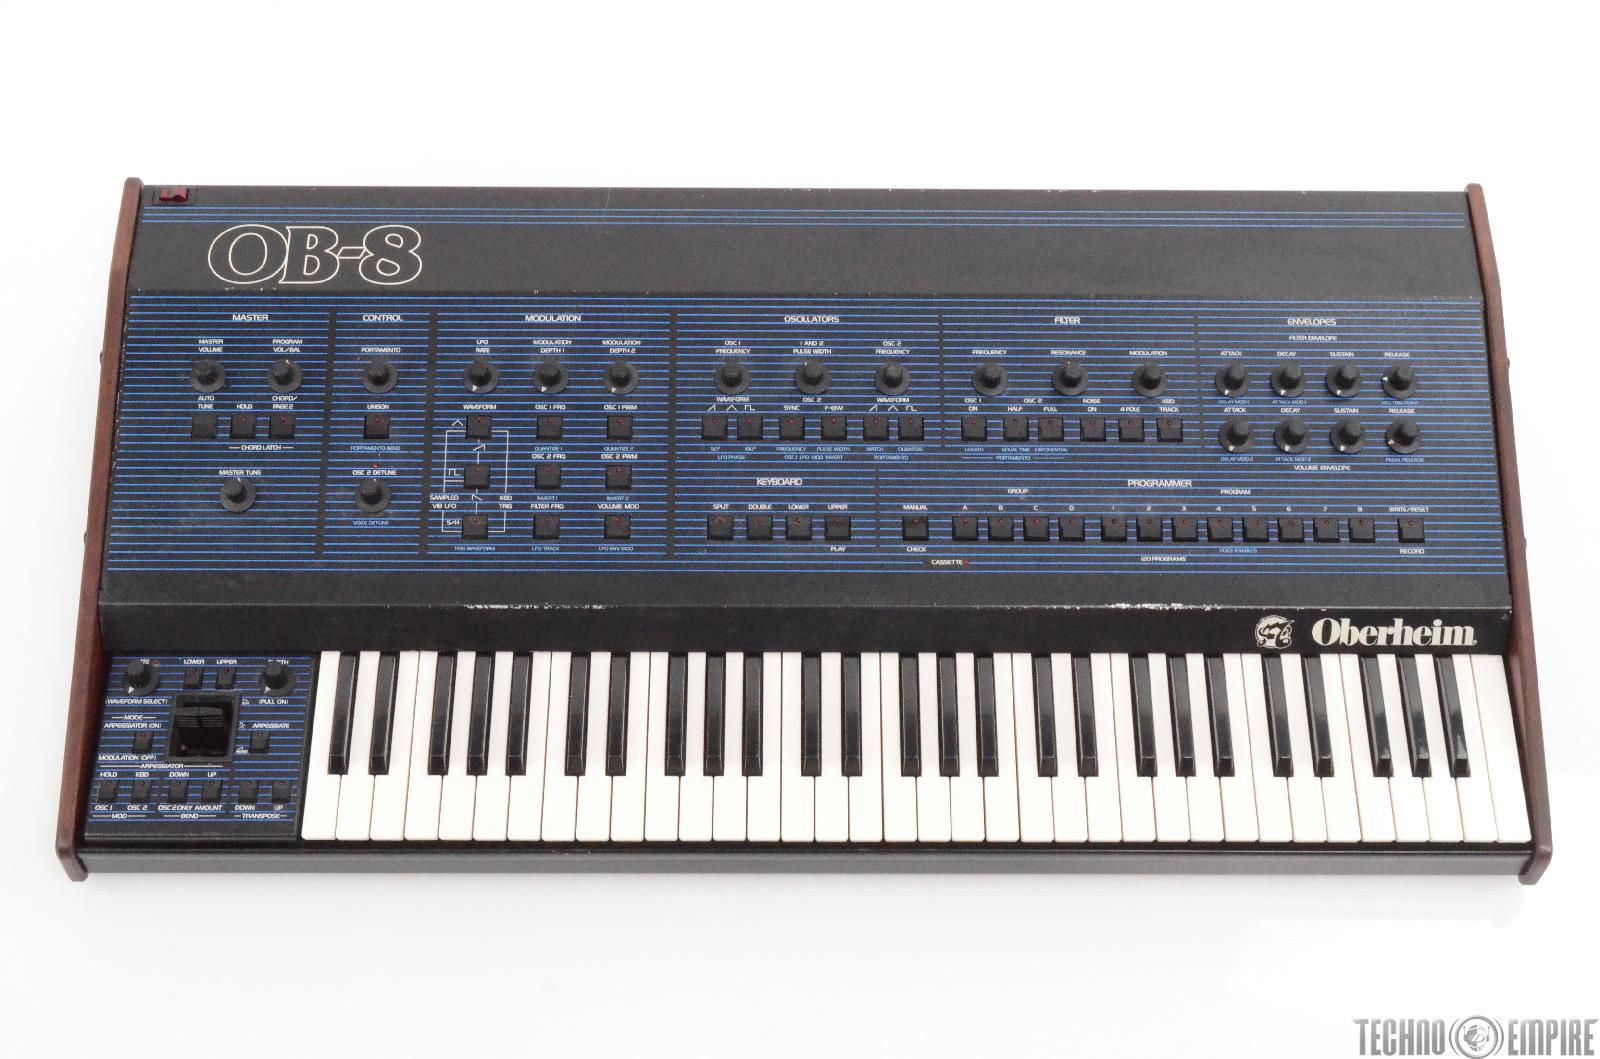 Oberheim OB-8 Analog 61 Note Keyboard Synthesizer w/ MIDI #29300